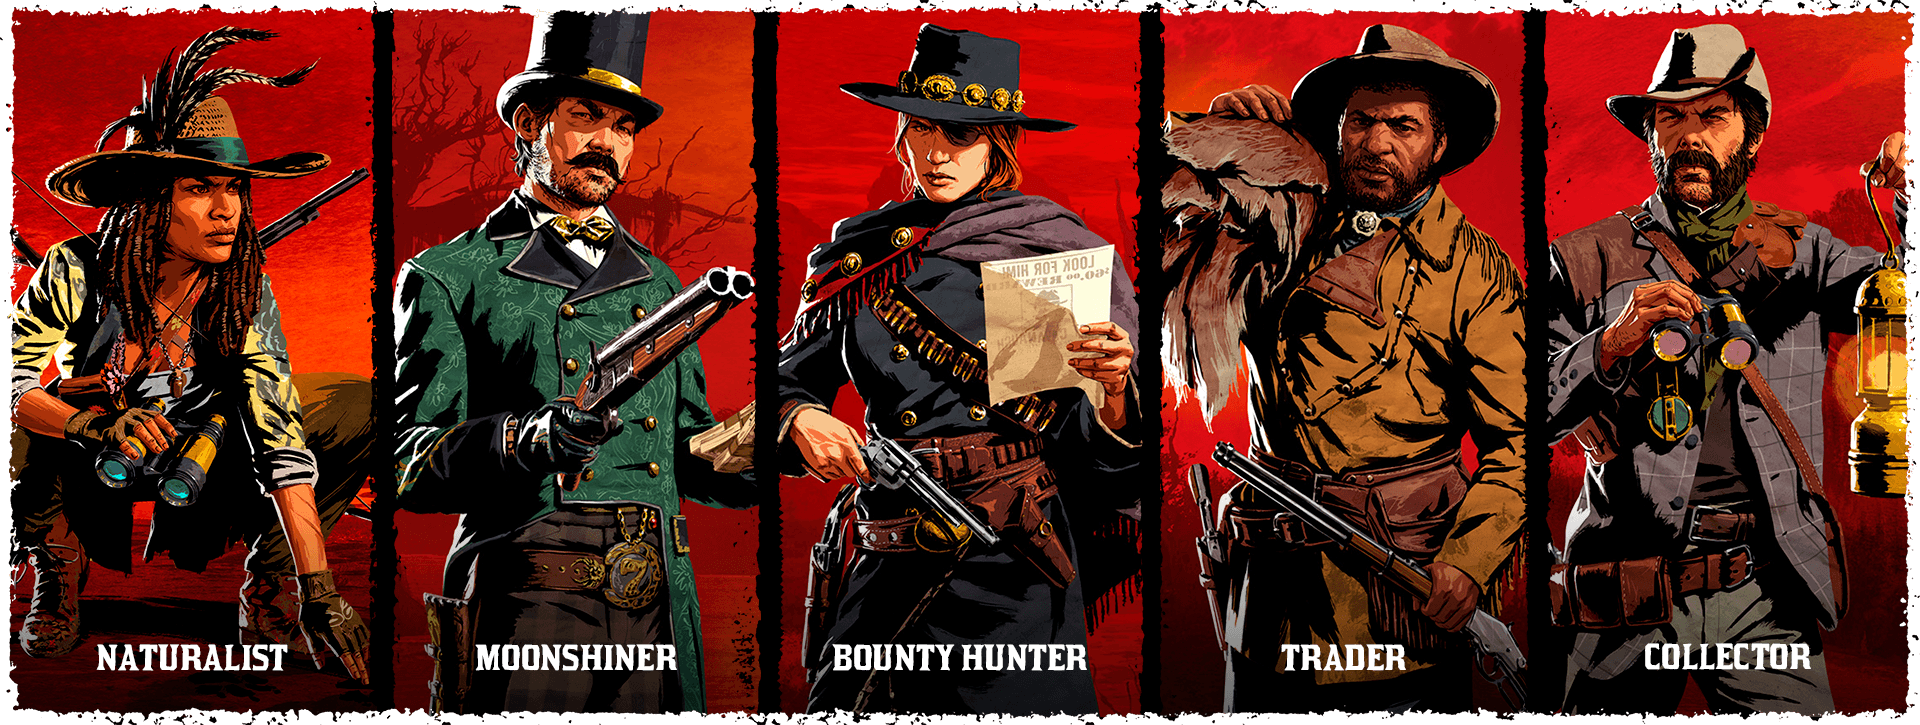 red-dead-online-artwork-52-hd.png